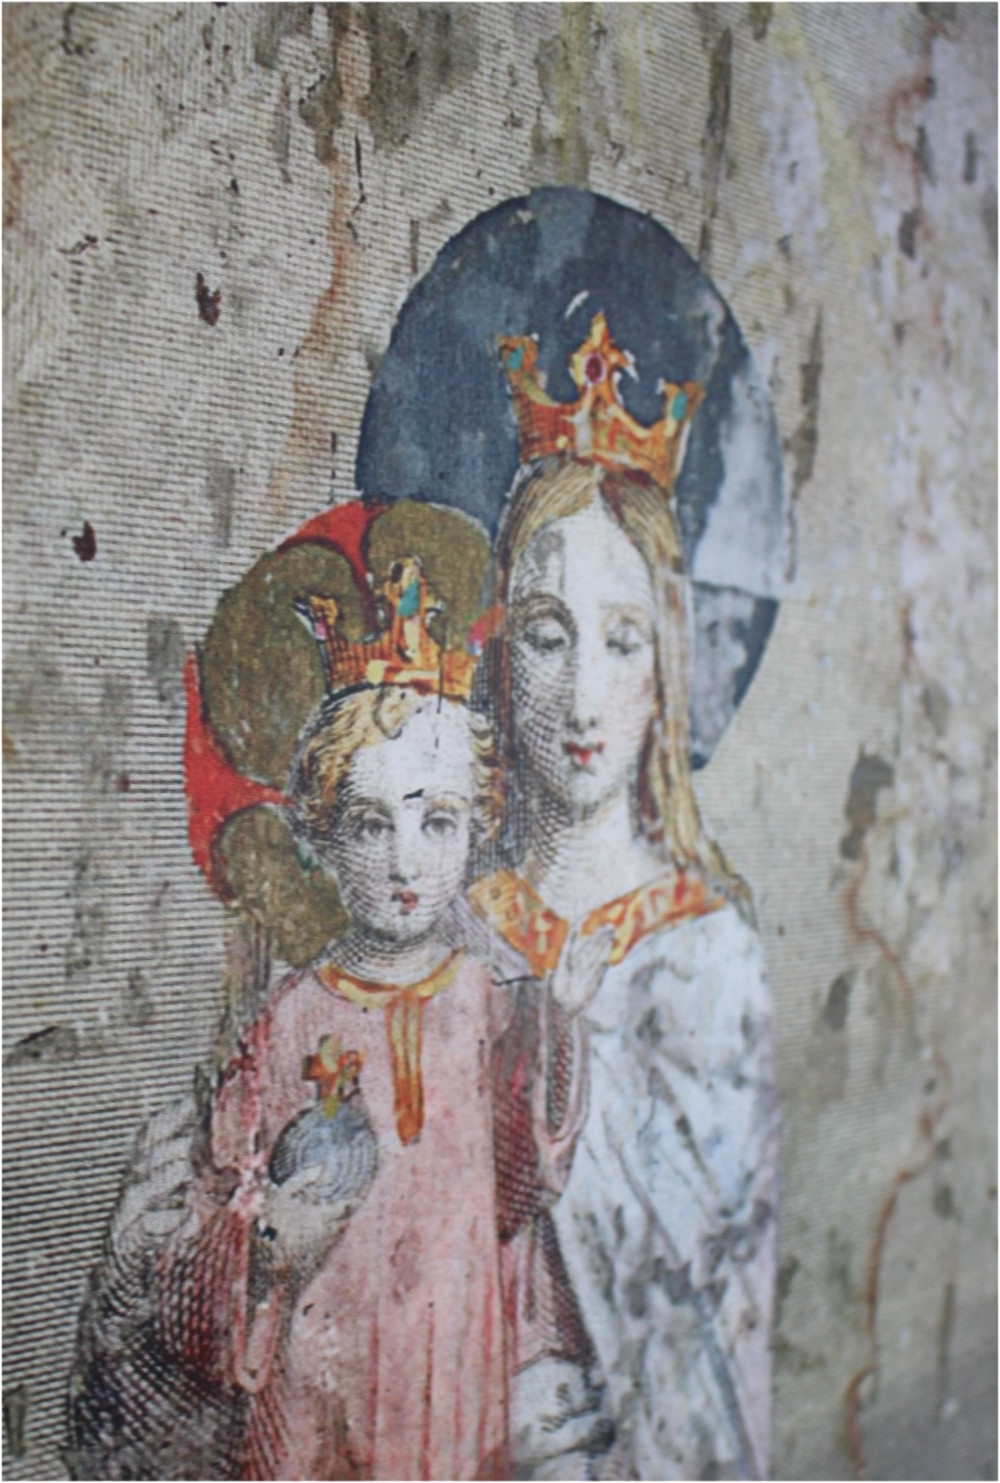 Wood Wall Art With Virgin Mary And Angels/cherubs In Antique Throughout Well Liked Vintage Style Wall Art (View 15 of 15)